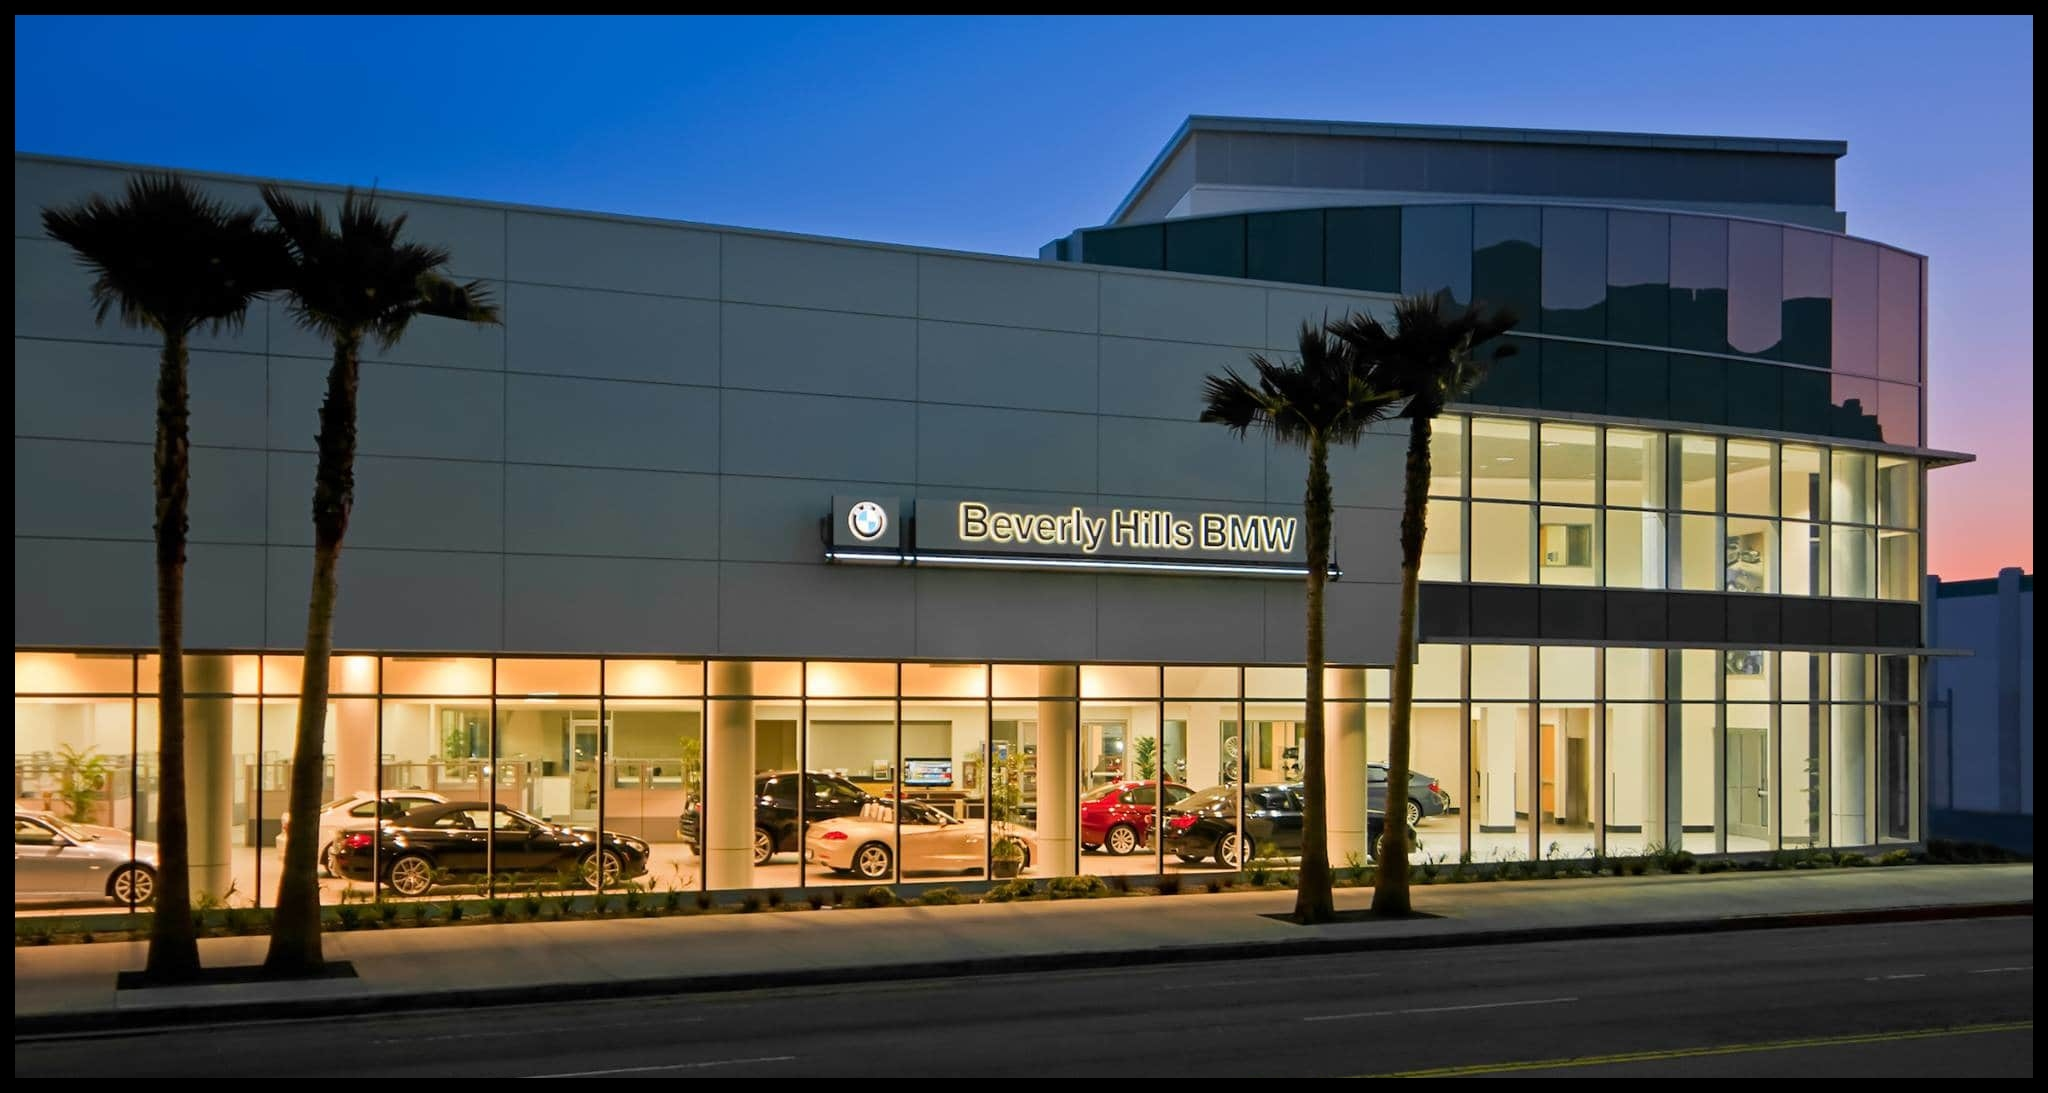 ABOUT BEVERLY HILLS BMW IN LOS ANGELES CA